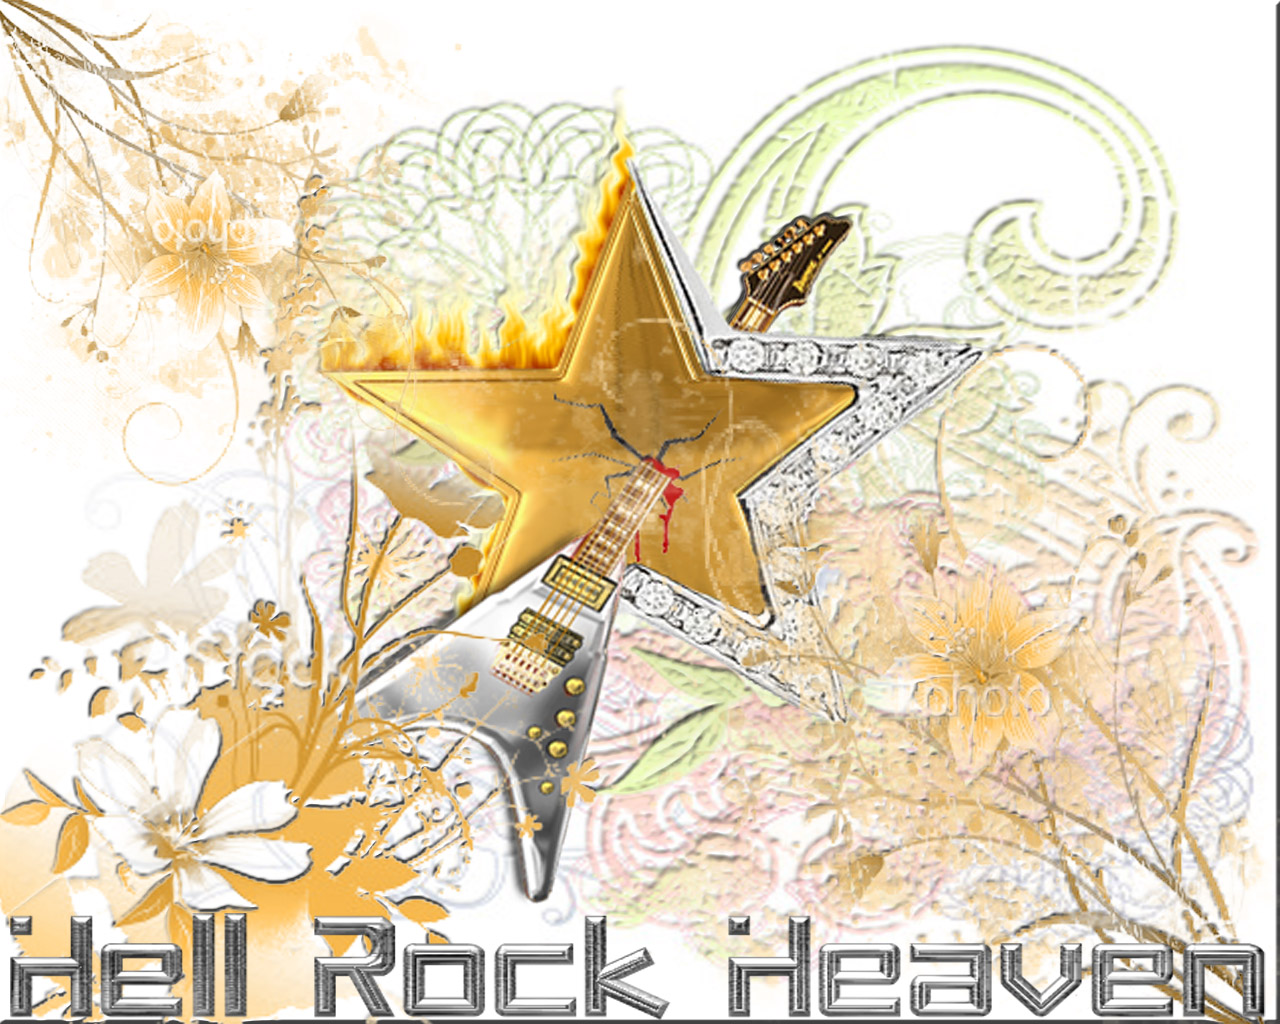 H. R. H. (Hell Rock Heaven)